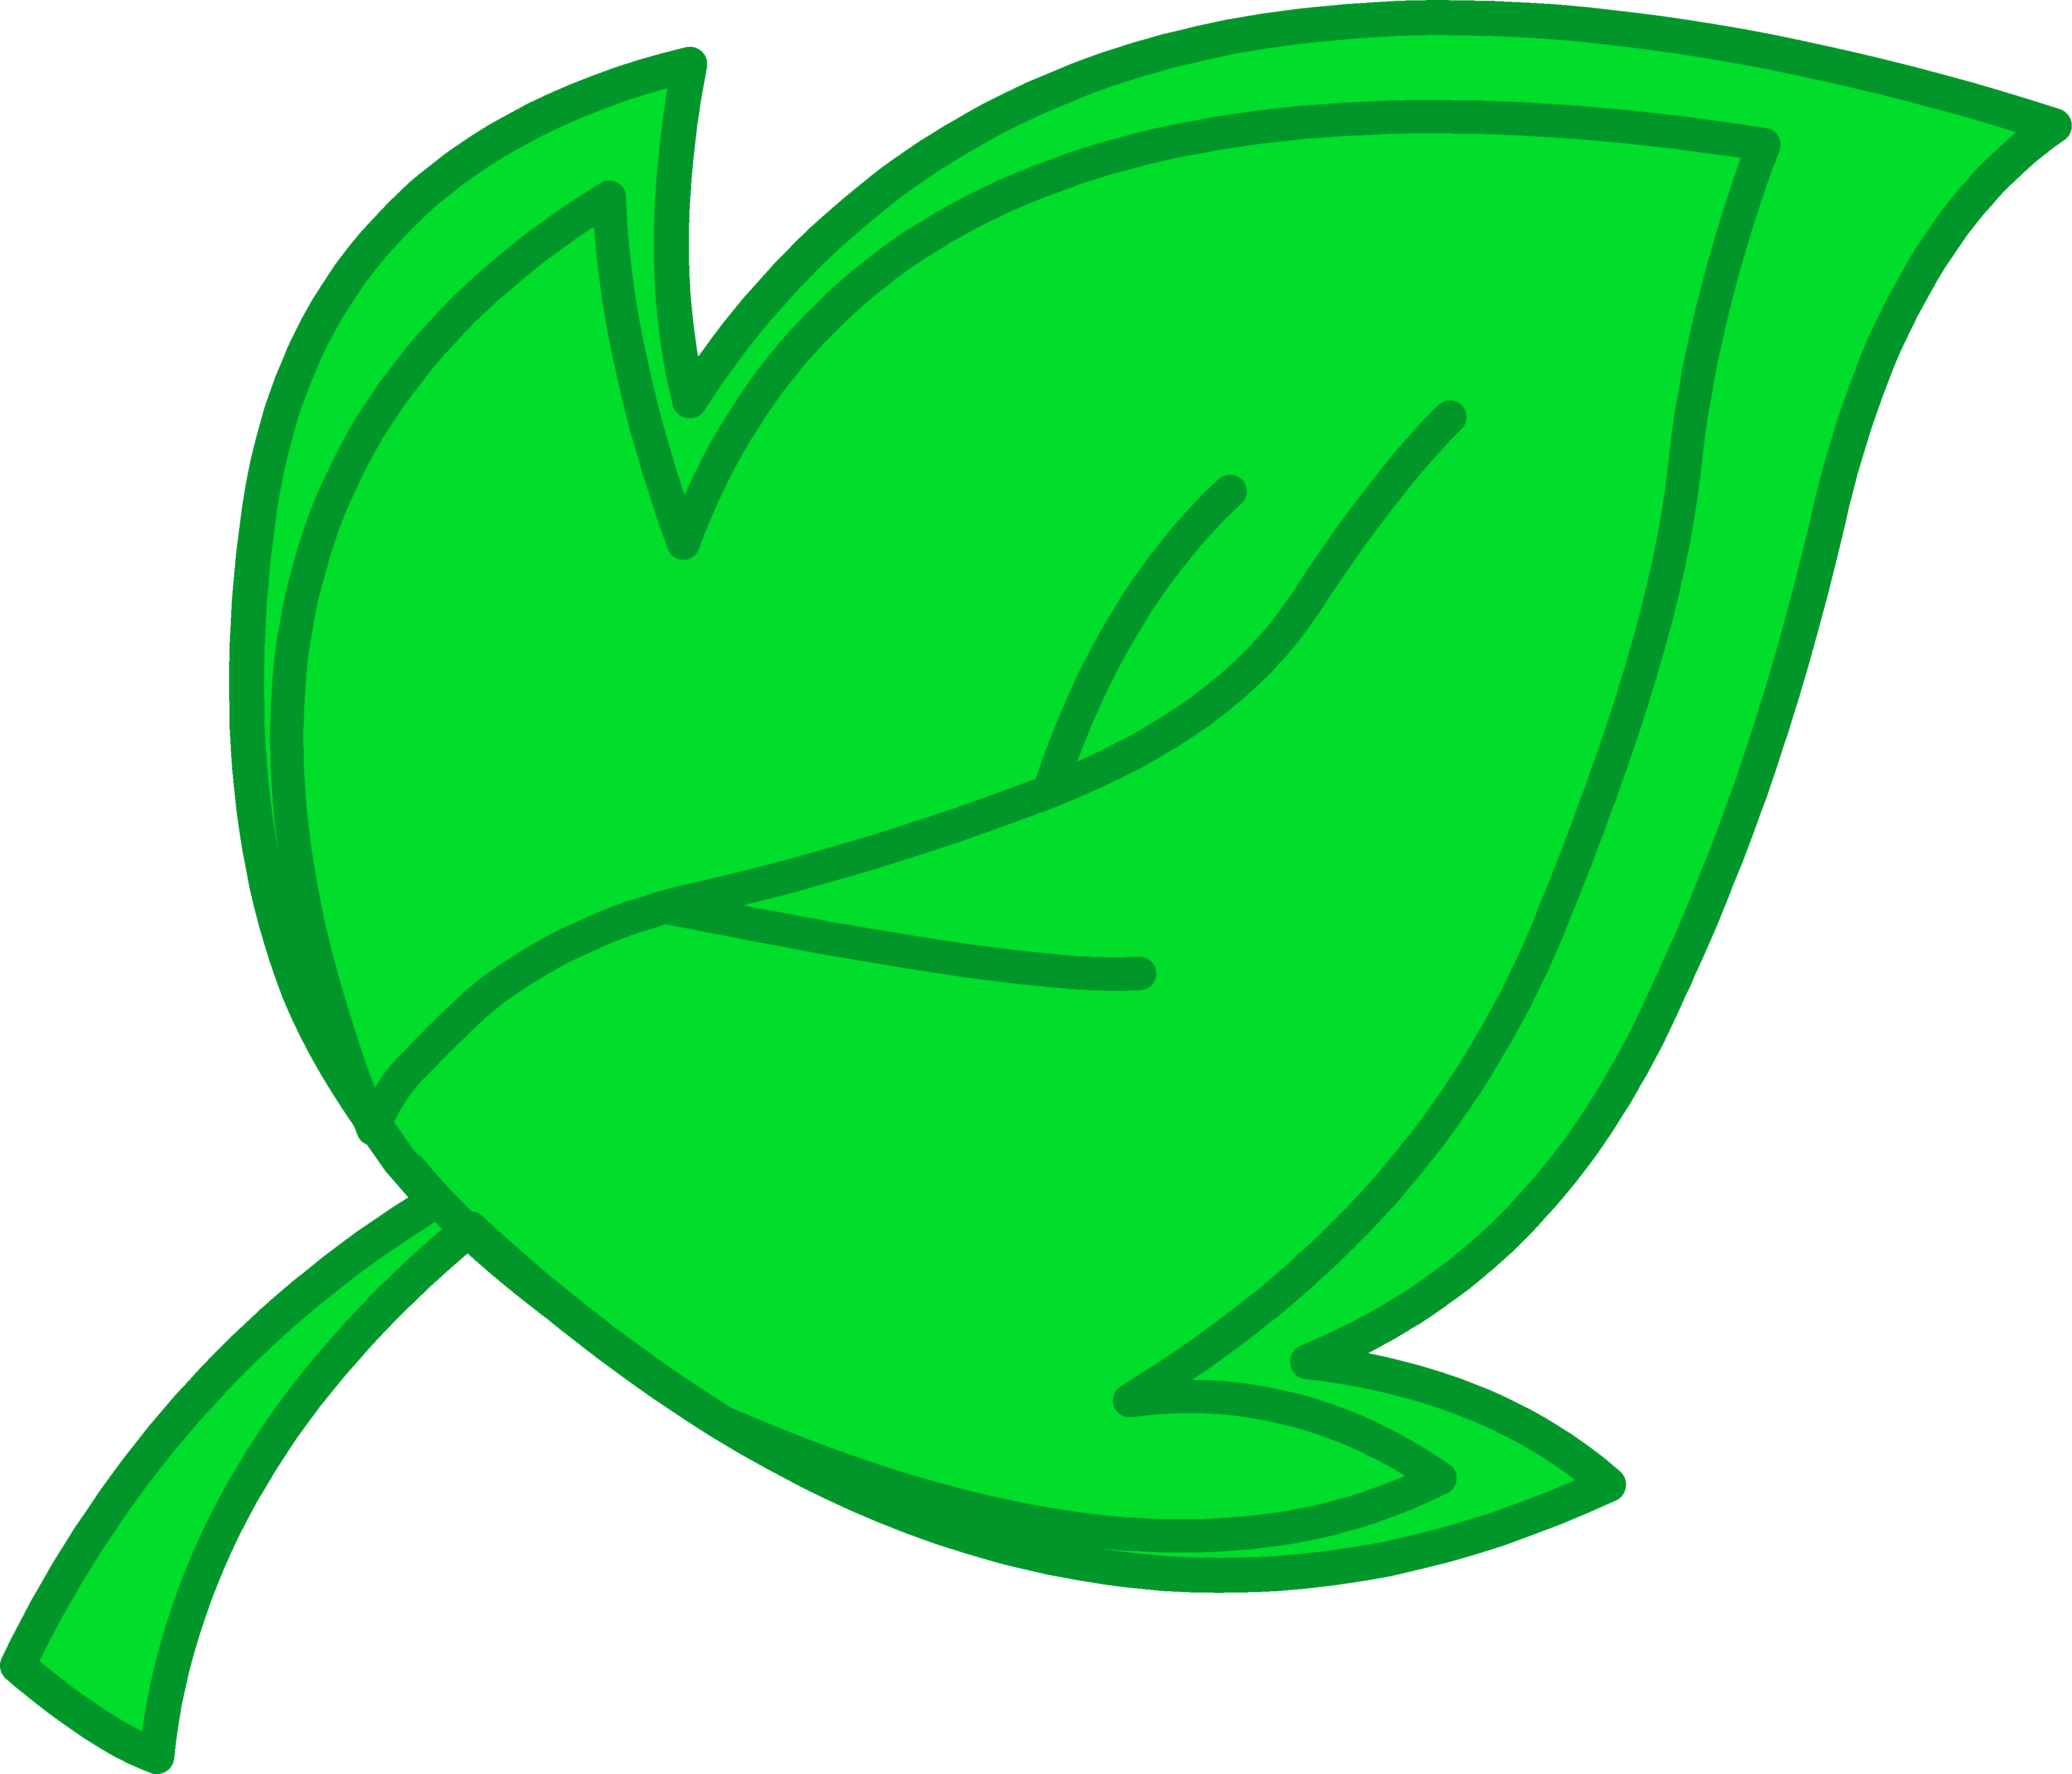 Green clipart #5, Download drawings